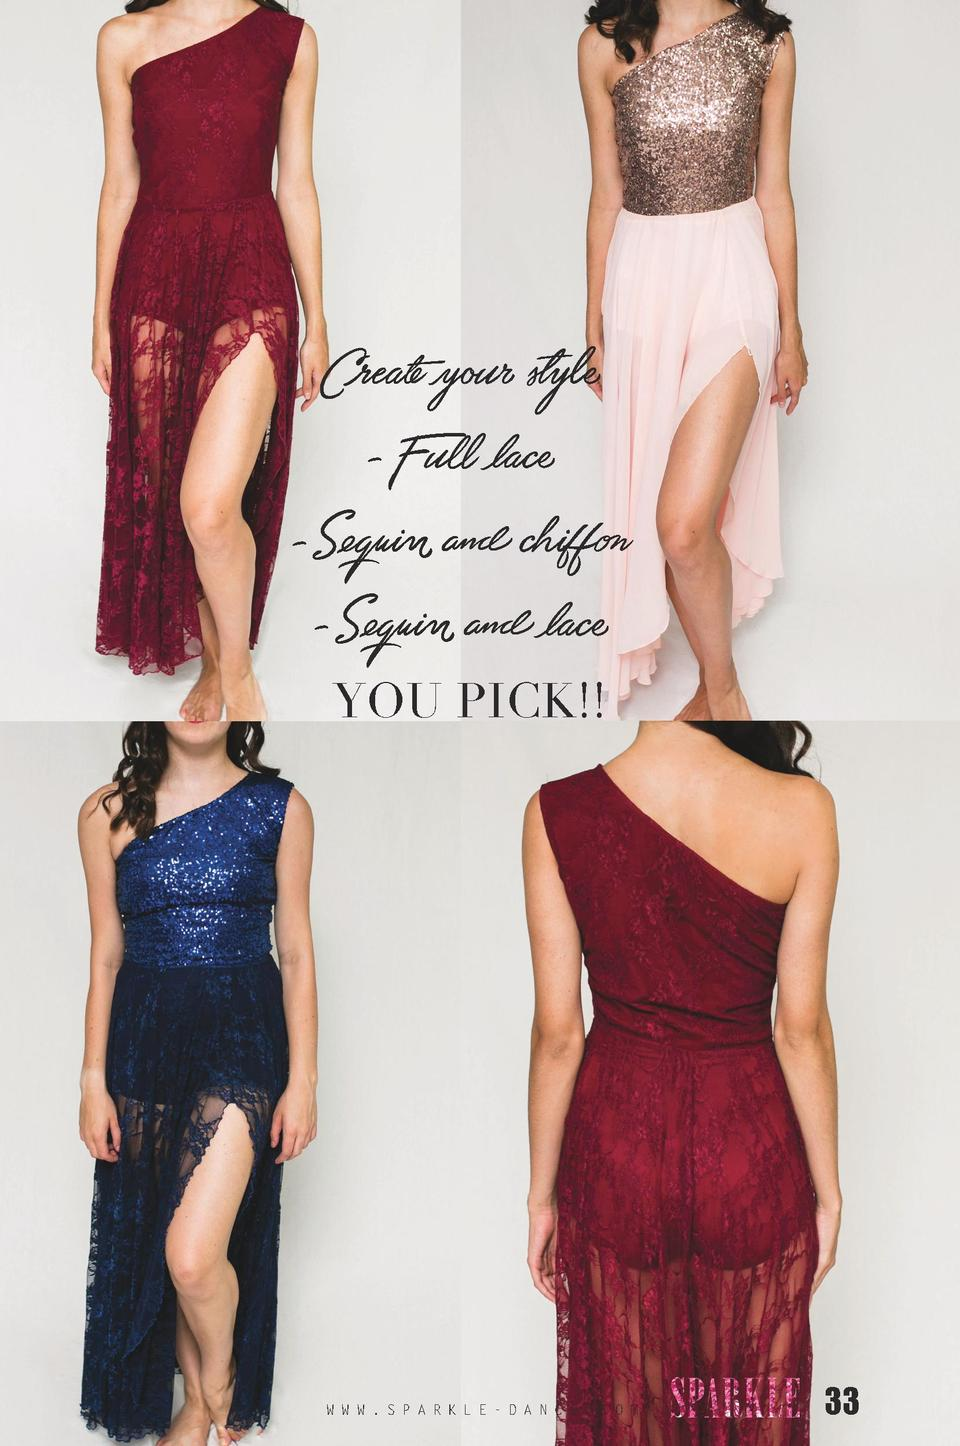 Create your style -Full lace -Sequin and chiffon -Sequin and lace YOU PICK    W W W . S P A R K L E - D A N C E . C O M  3...